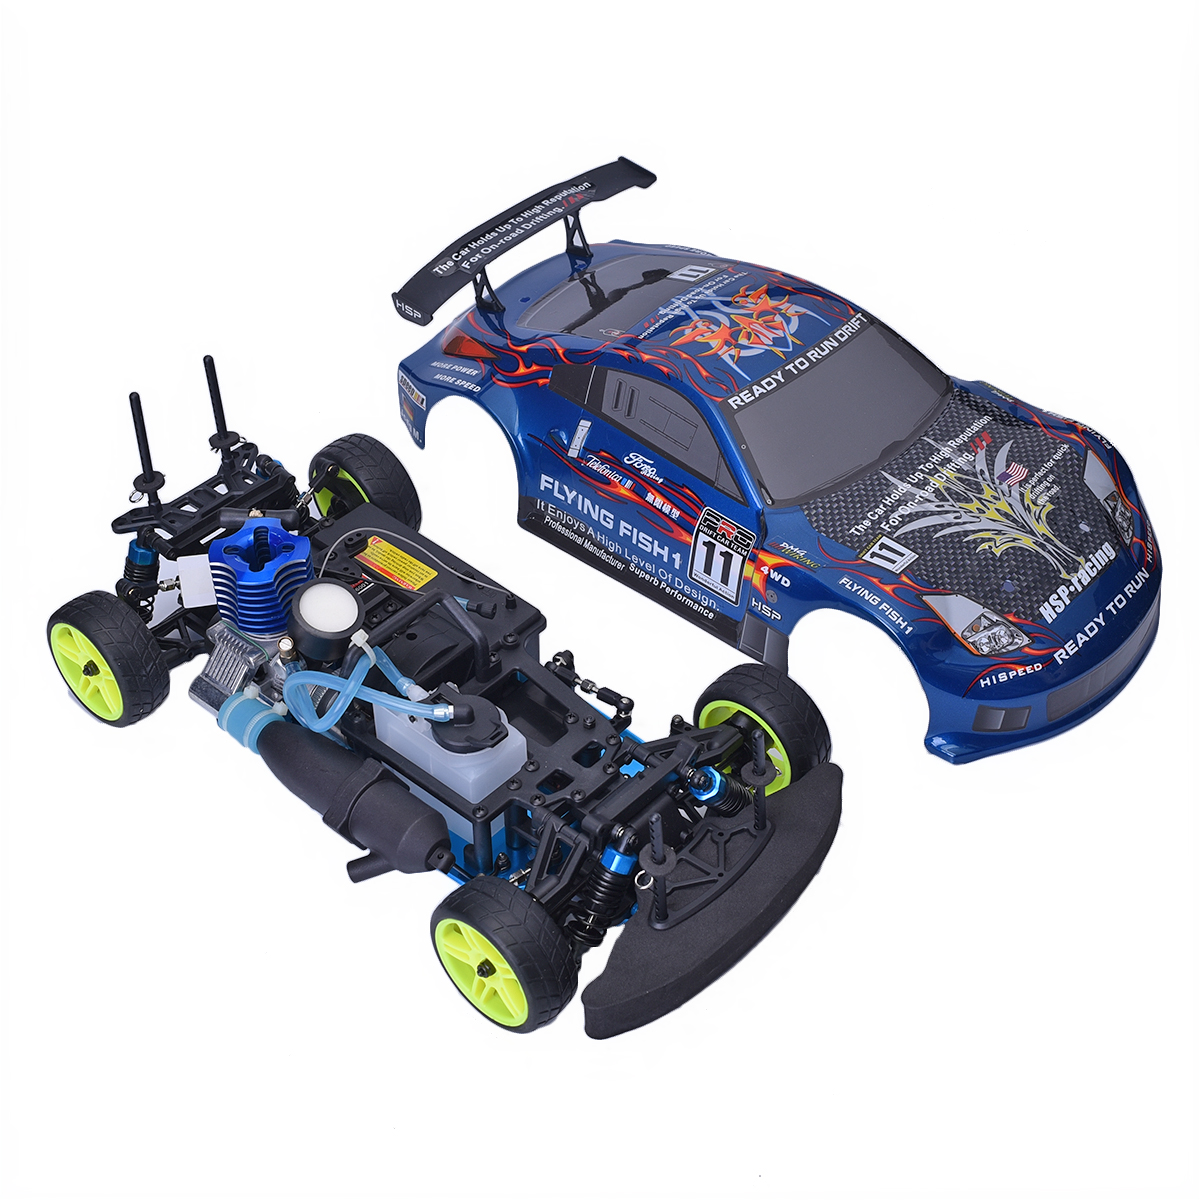 hsp drift radio rc car 1 10 scale model 4wd gas power. Black Bedroom Furniture Sets. Home Design Ideas